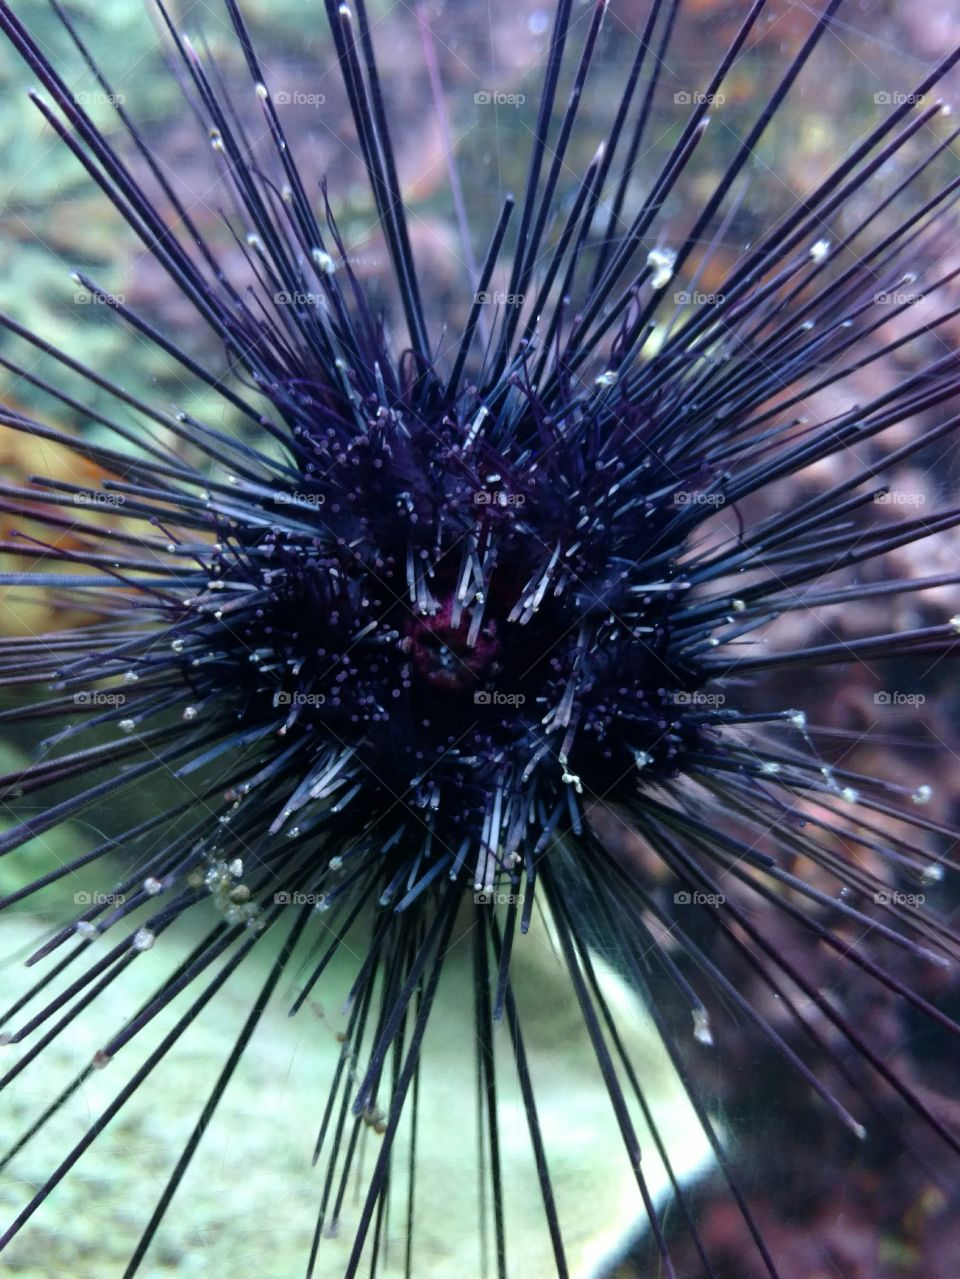 Suspended Sea Urchin on/through glass